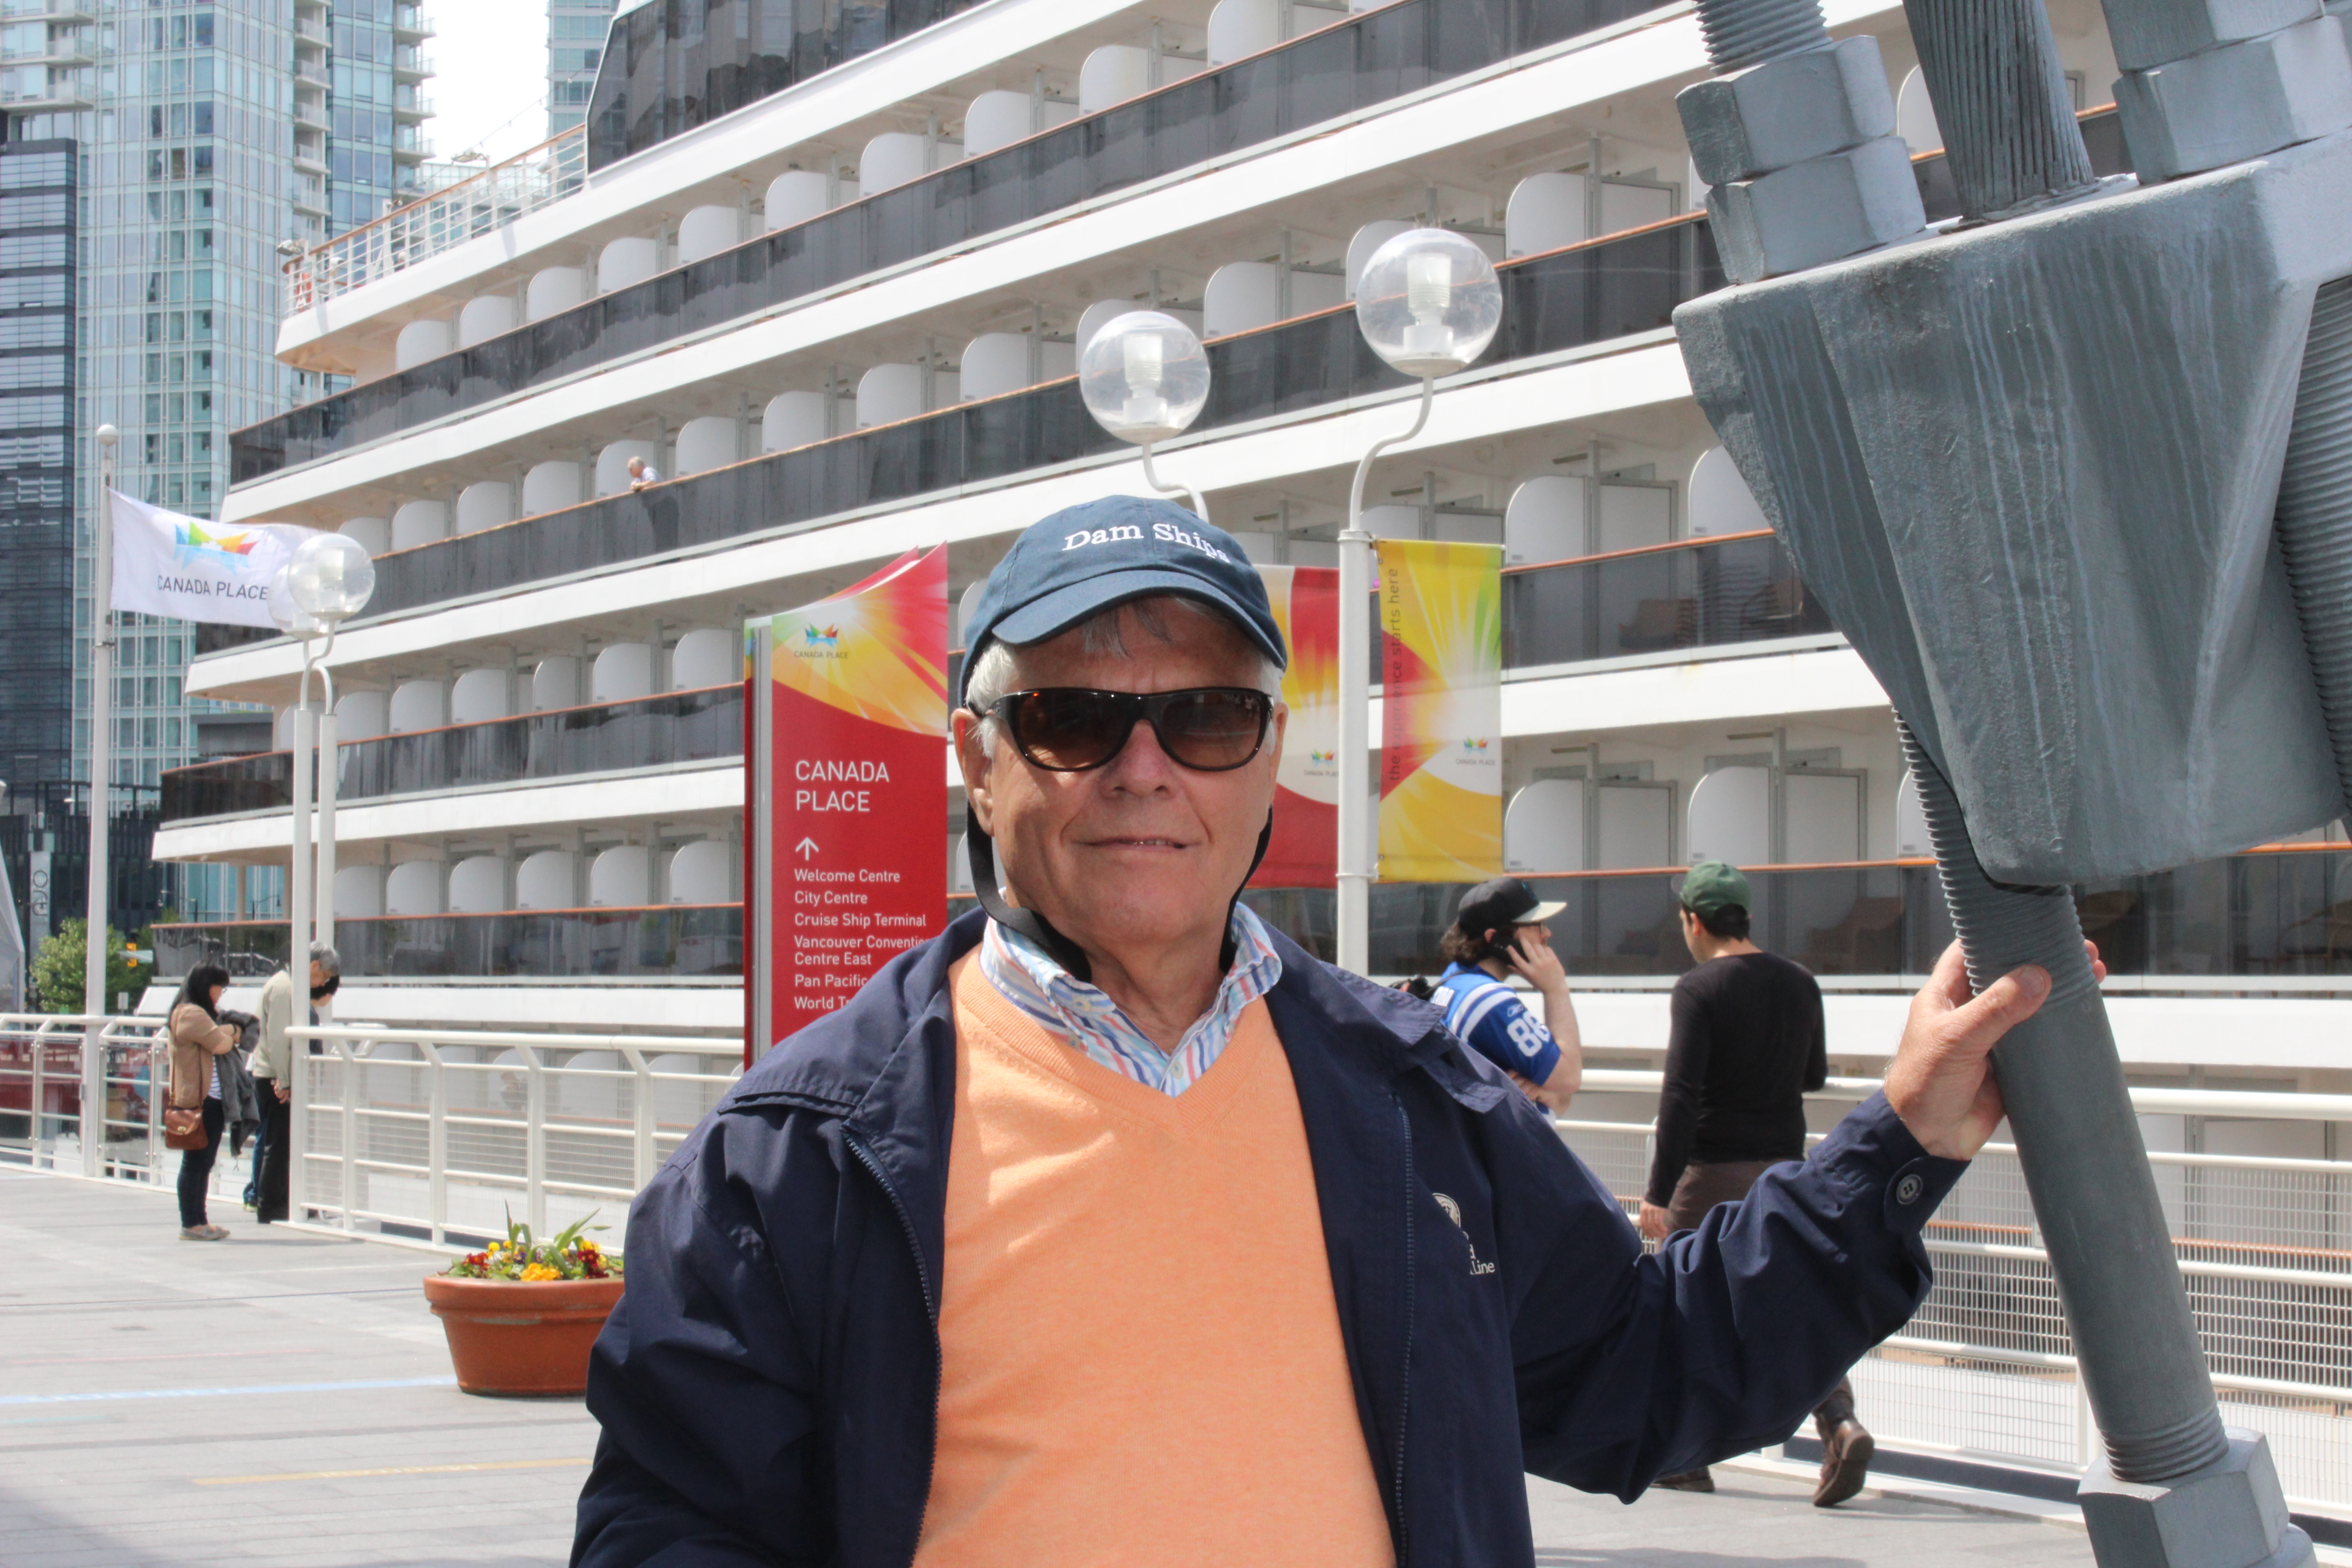 Graham enjoying Holland America Cruising